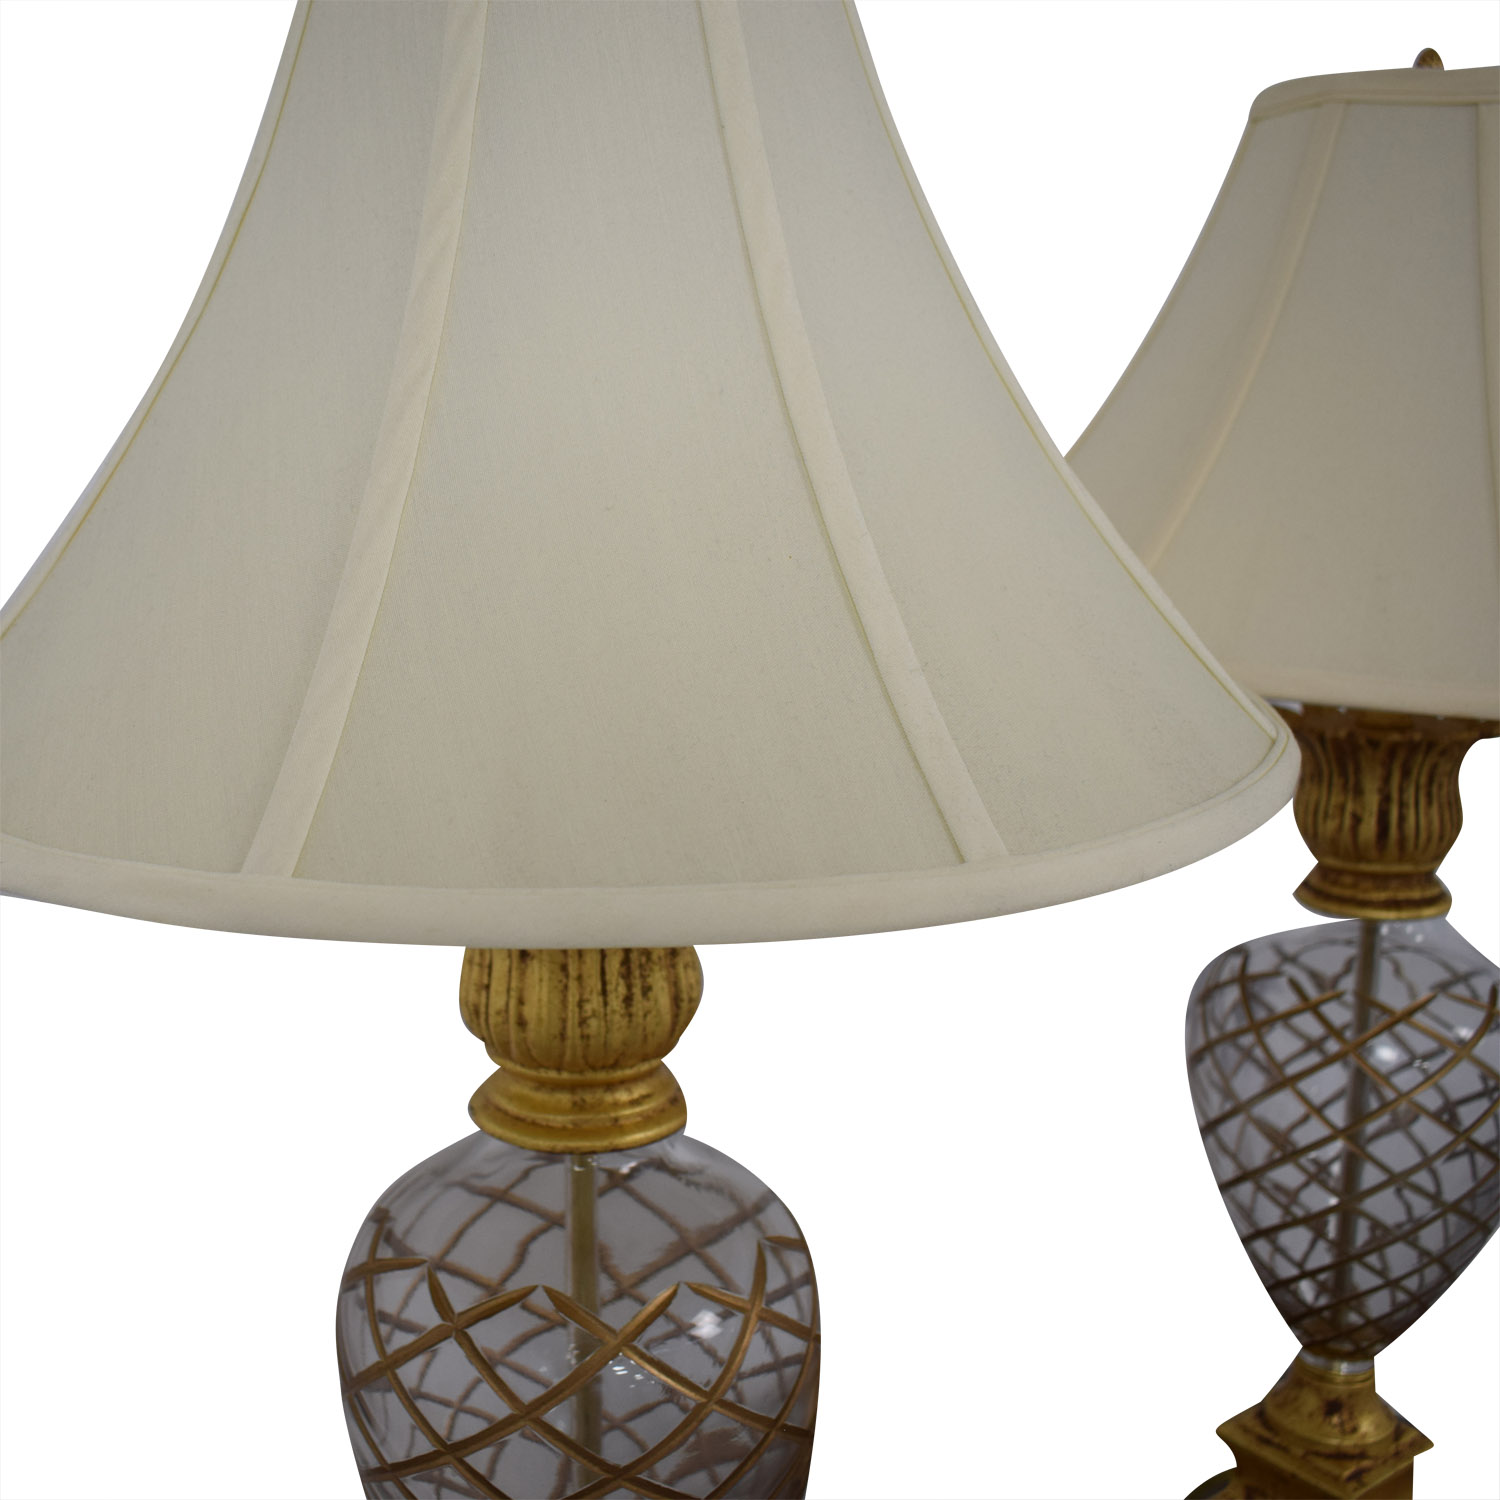 Ethan Allen Ethan Allen Table Lamps nyc